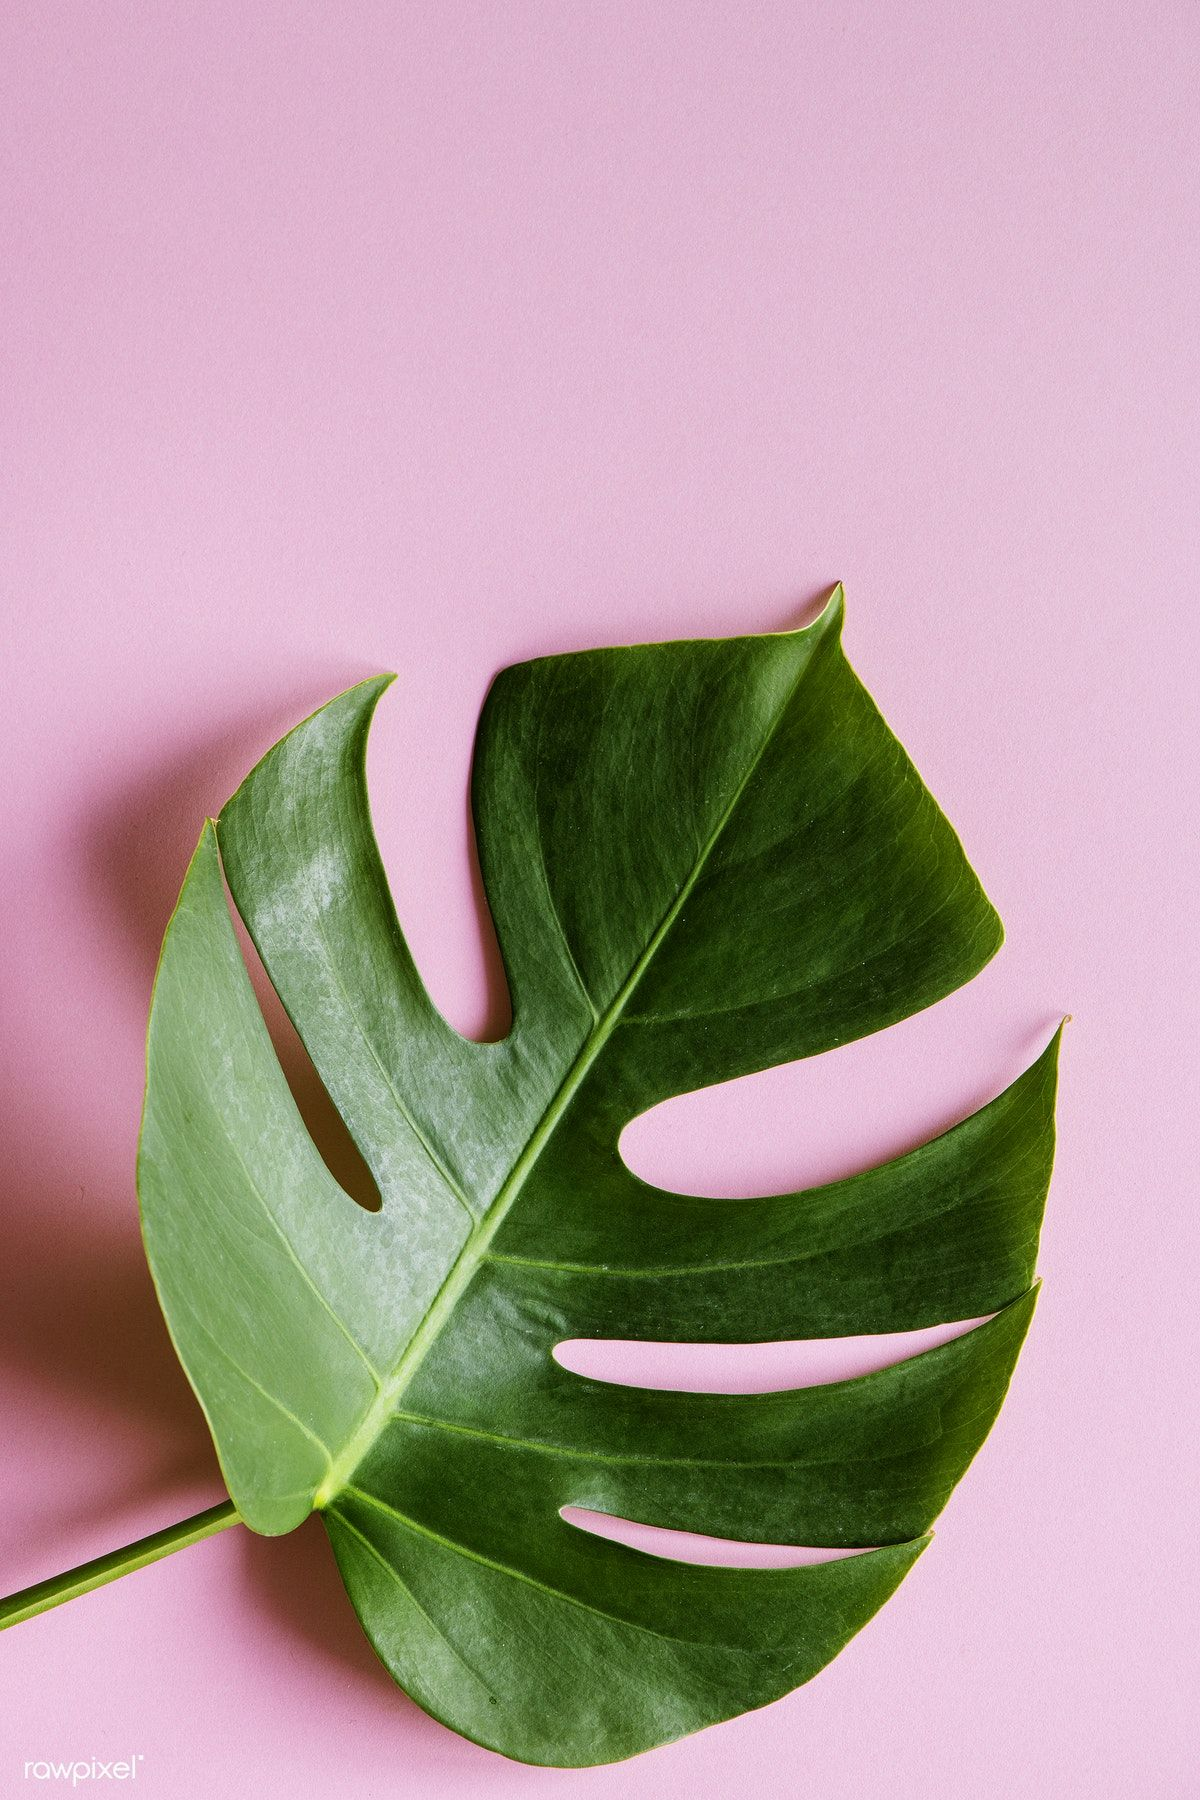 Tropical leaf on pink background. Get this free image at